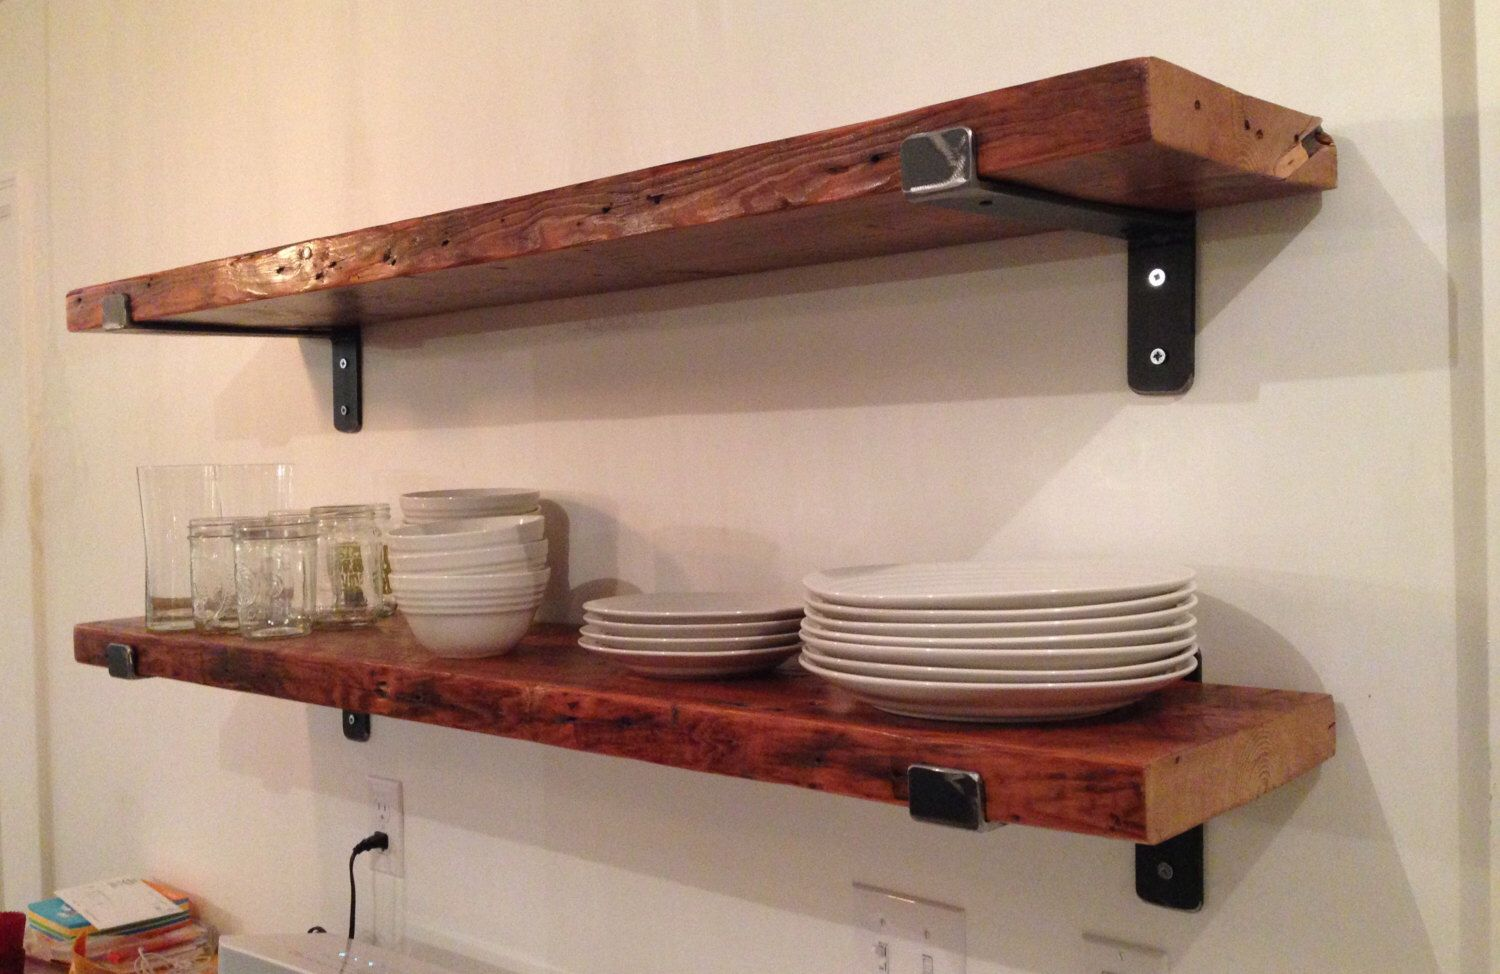 One Reclaimed Wood Shelf 48 X 11 With Two Handcrafted Metal